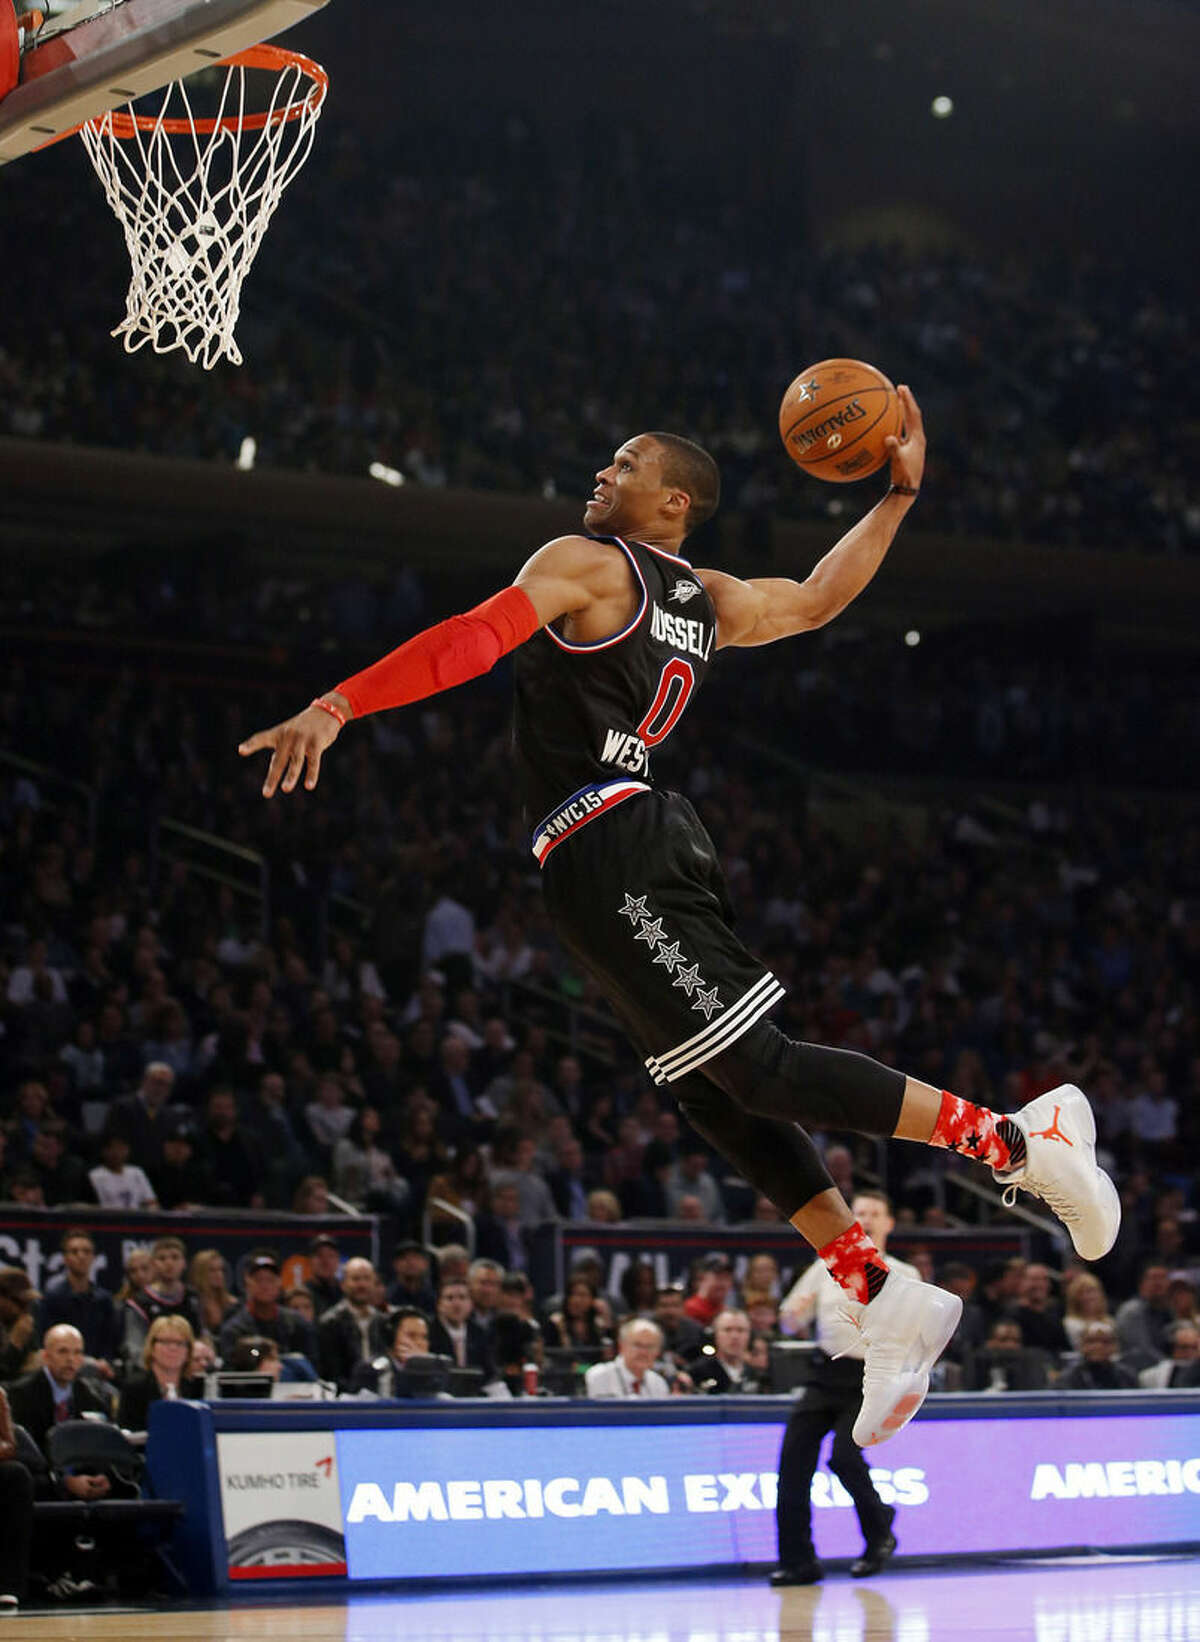 West Team's Russell Westbrook, of the Oklahoma City Thunder, dunks during the first half of the NBA All-Star basketball game, Sunday, Feb. 15, 2015, in New York. (AP Photo/Kathy Willens)